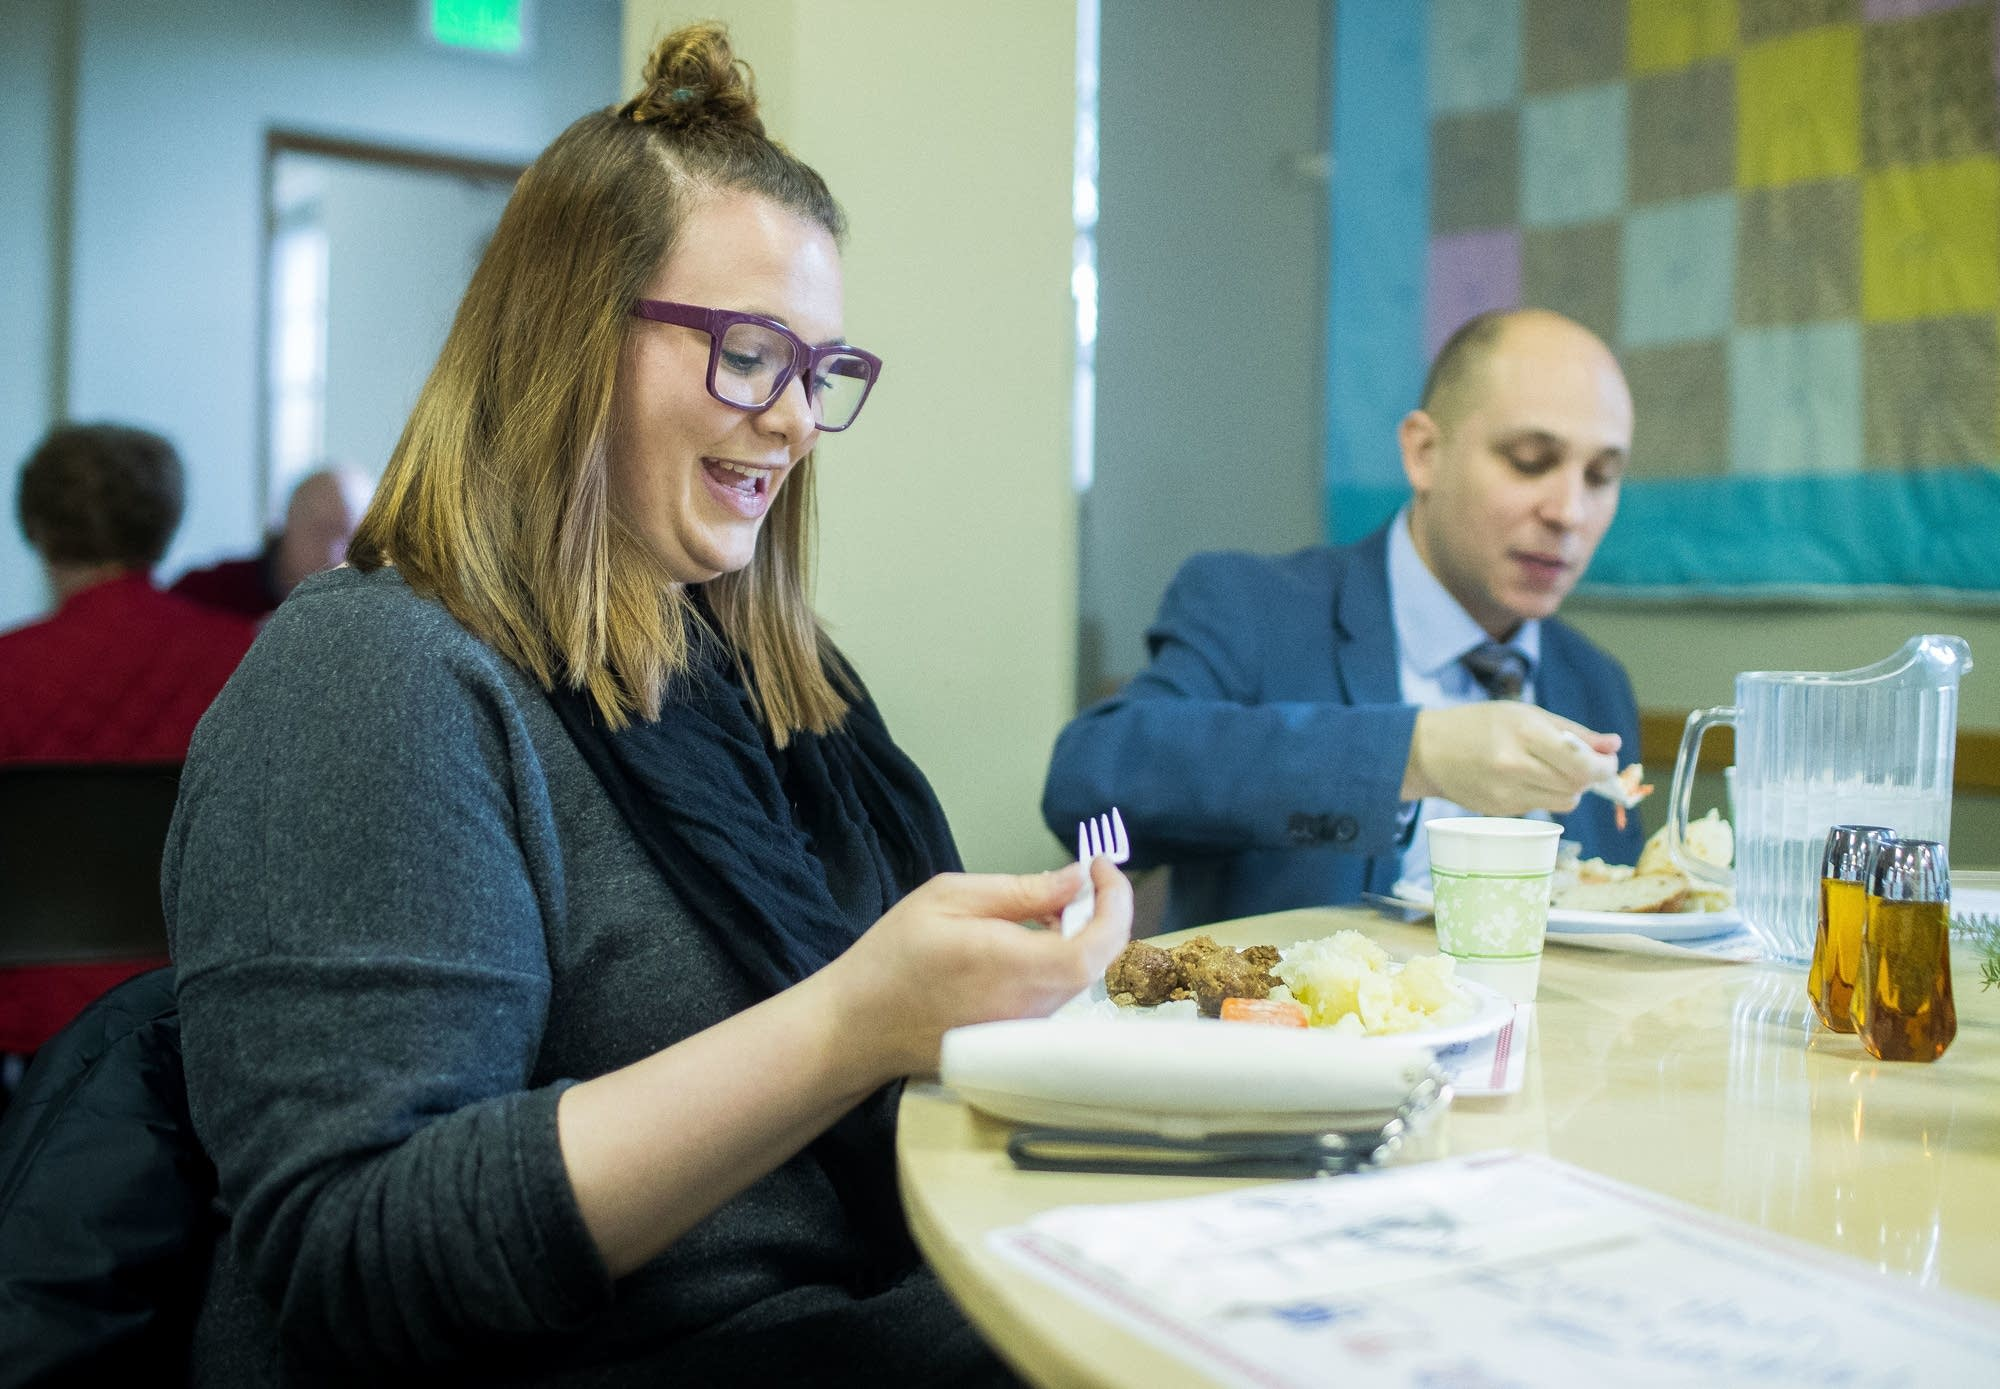 Leah Damon takes her first bite of lutefisk during the annual dinner.